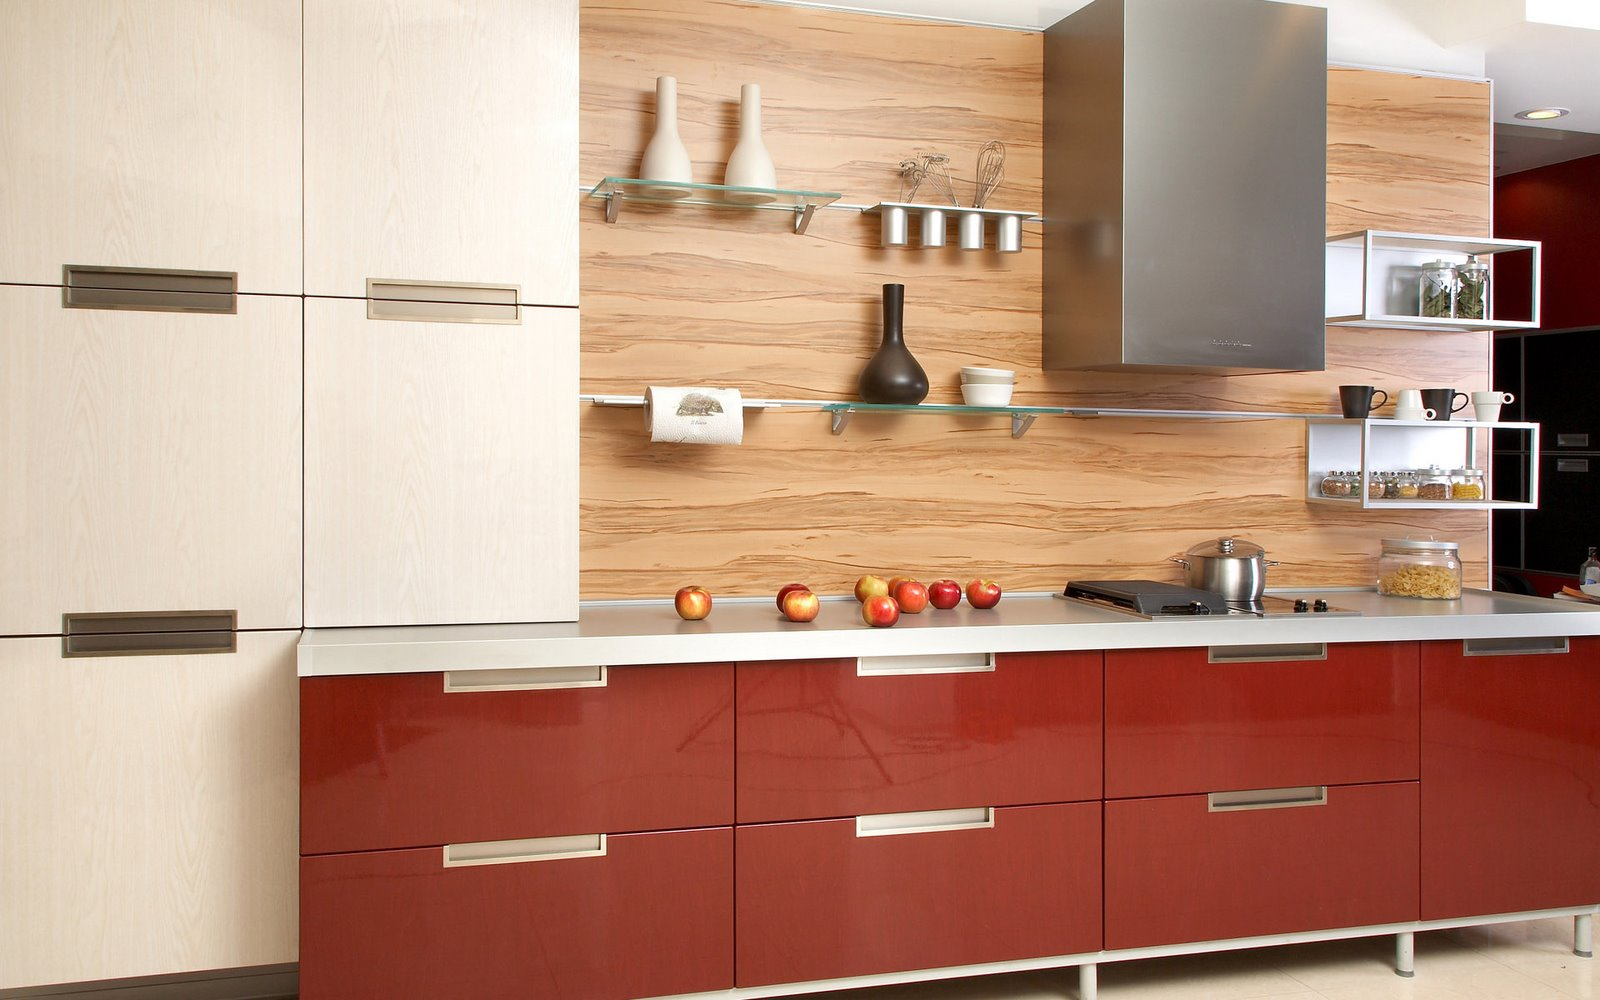 Kitchen : Great Italian Kitchen Design With Wooden Floor, Kitchen